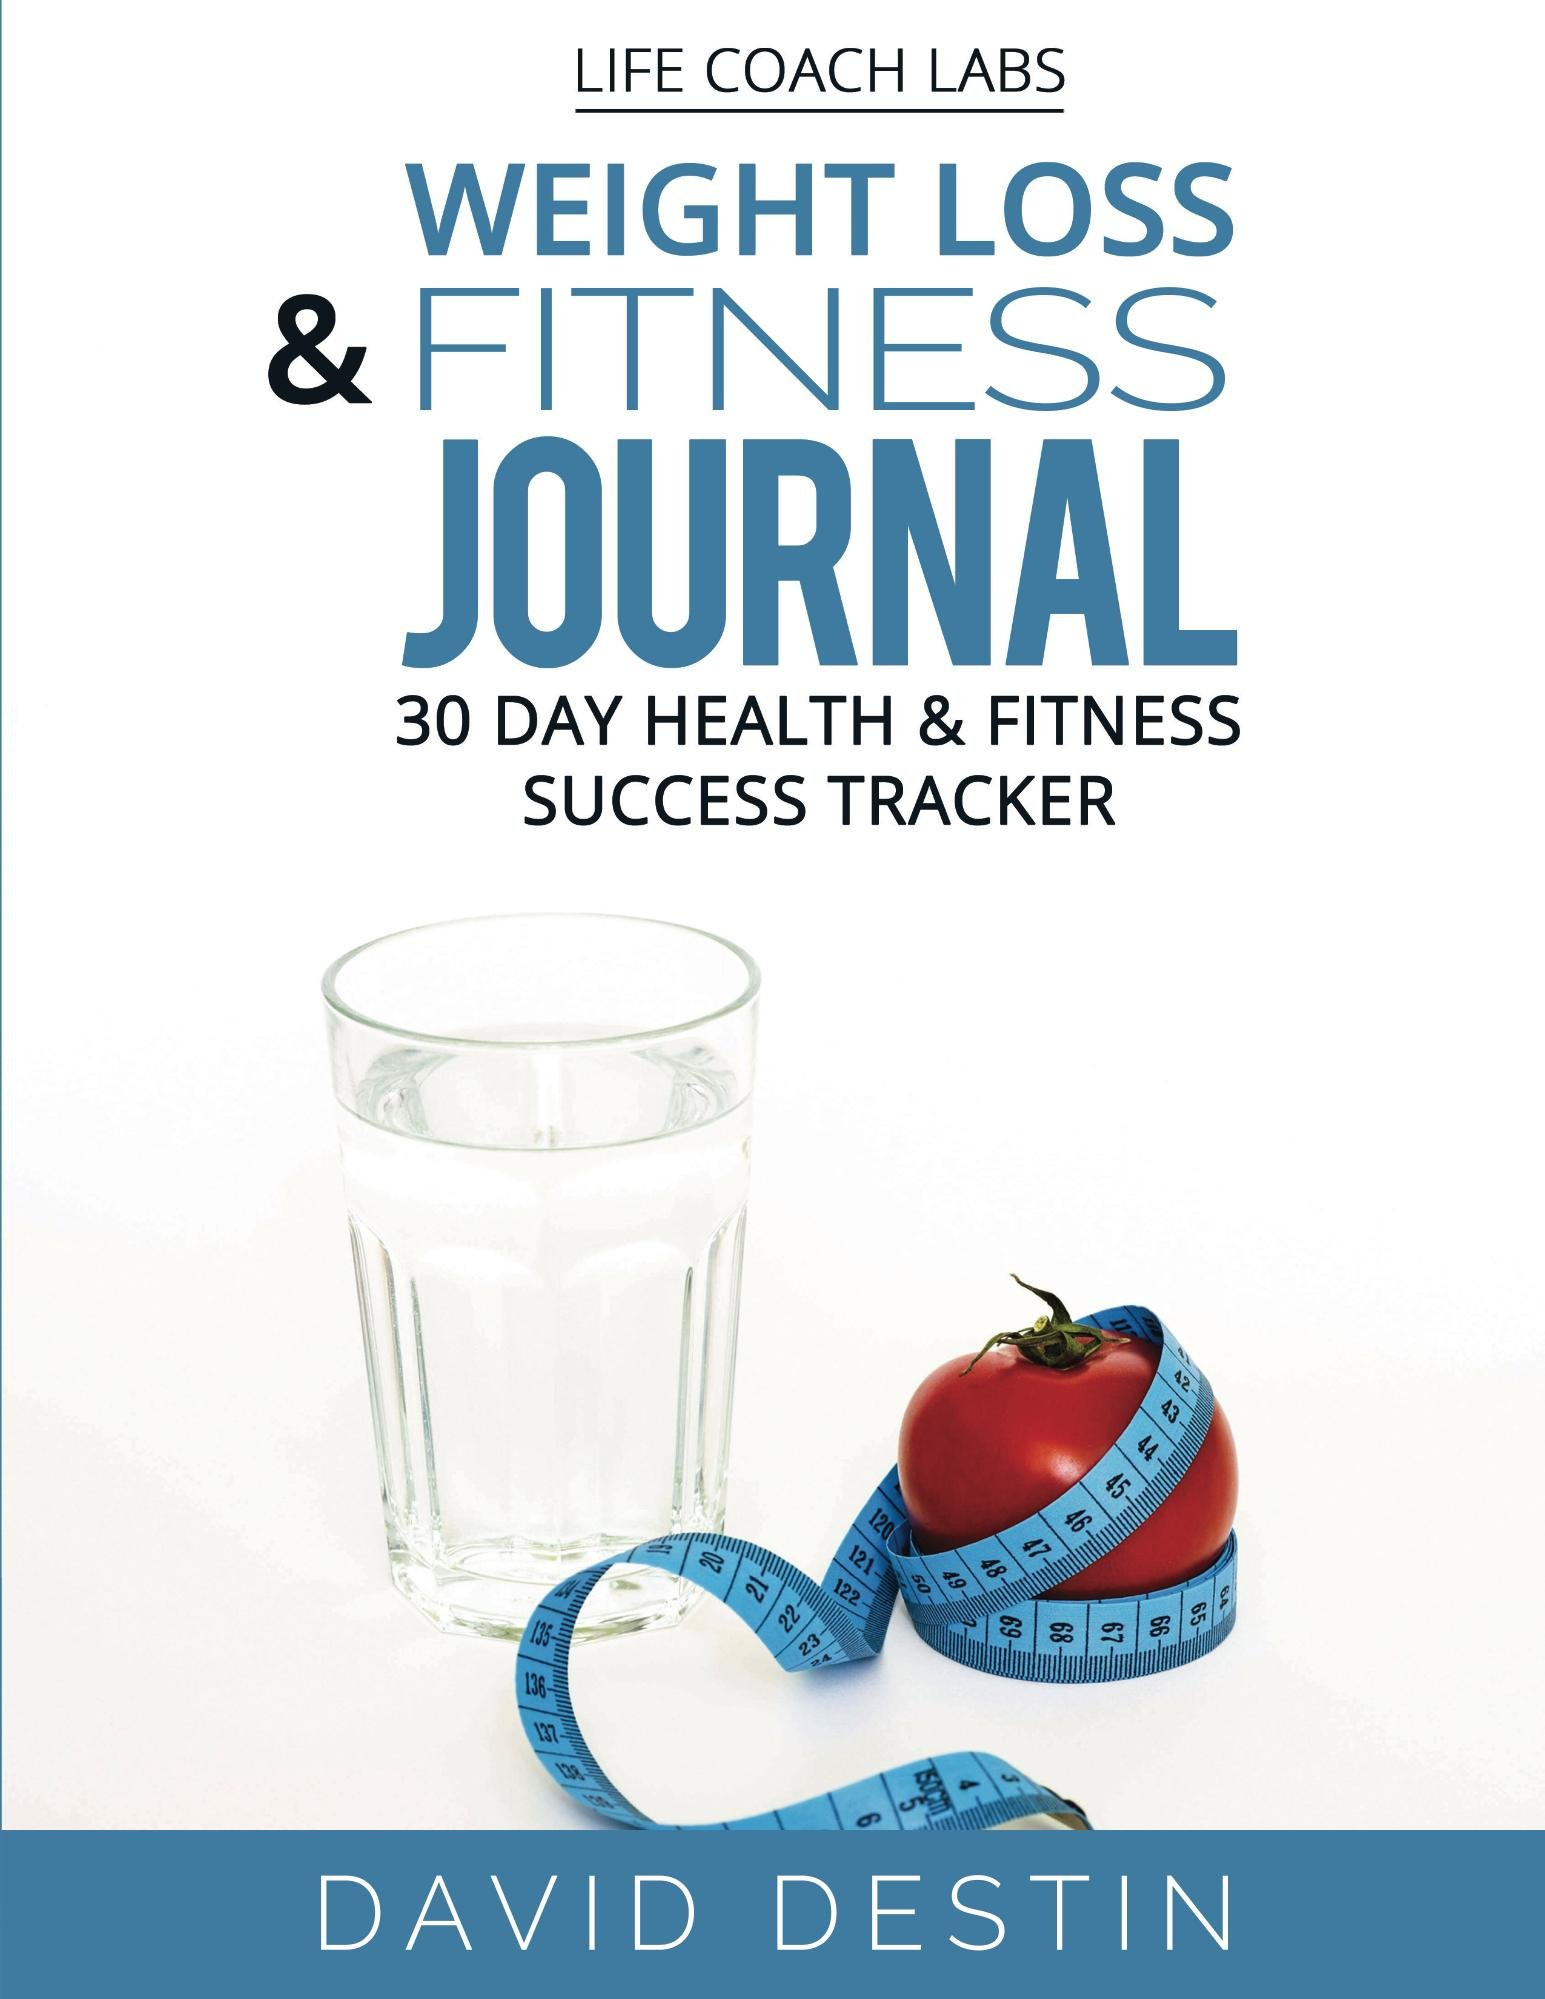 Life Coach Labs Weight Loss & Fitness Journal: 30 Day Health & Fitness Success Tracker (English Edition) 1